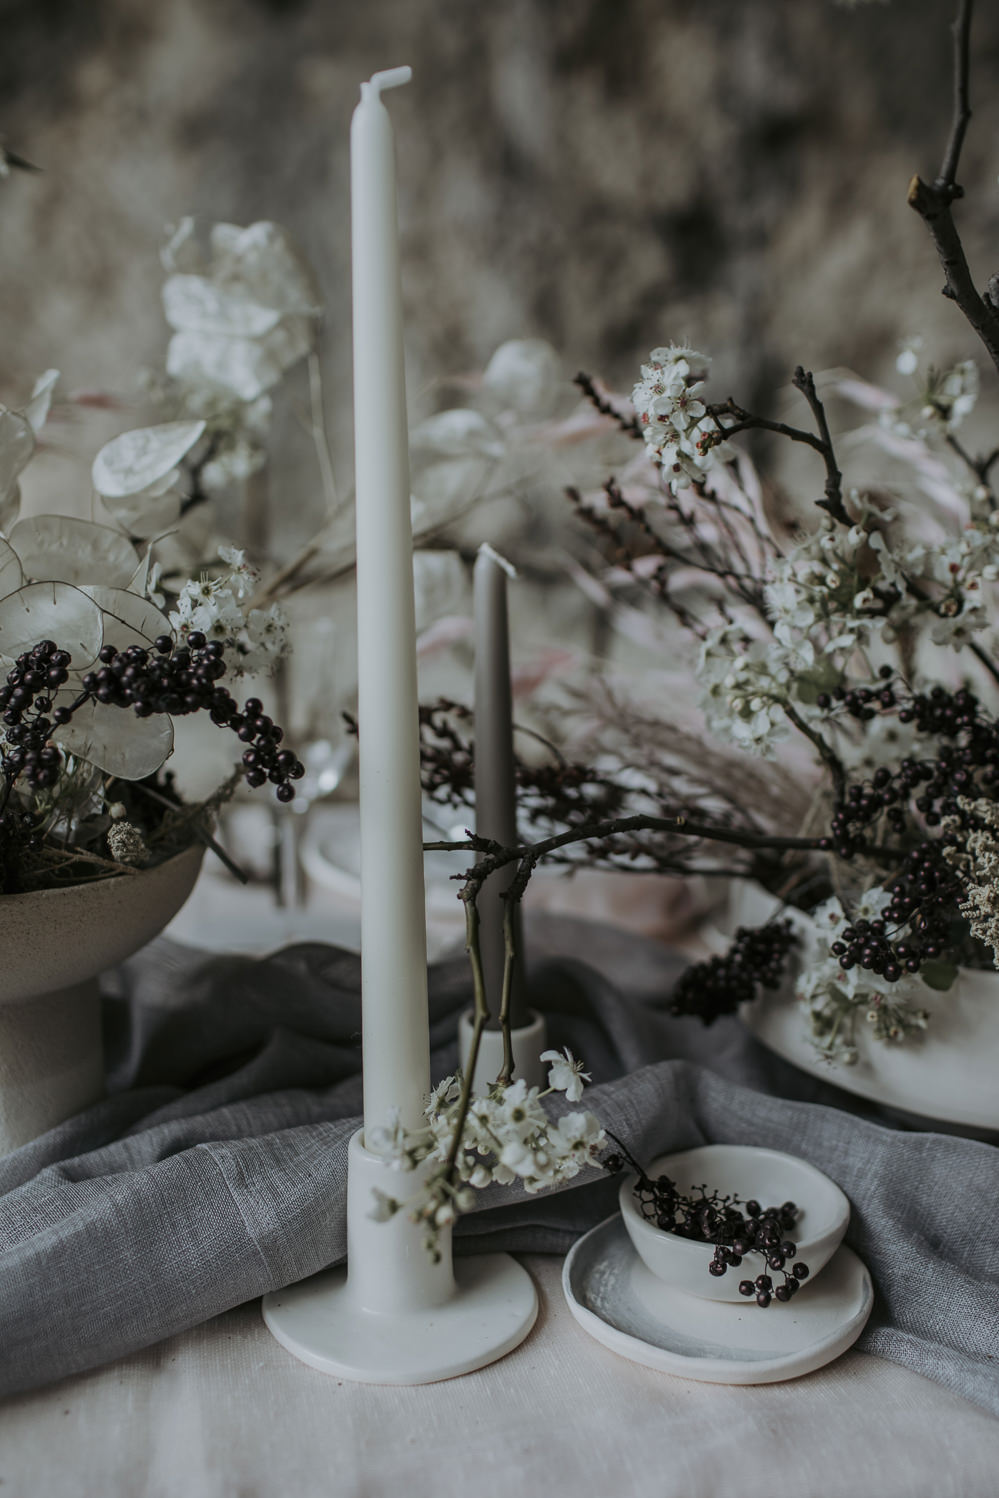 Tablescape Table Decor Candles Branches Natural Wild Neutrals Linen Flowers Cave Wedding Ideas Vanessa Illi Photographer